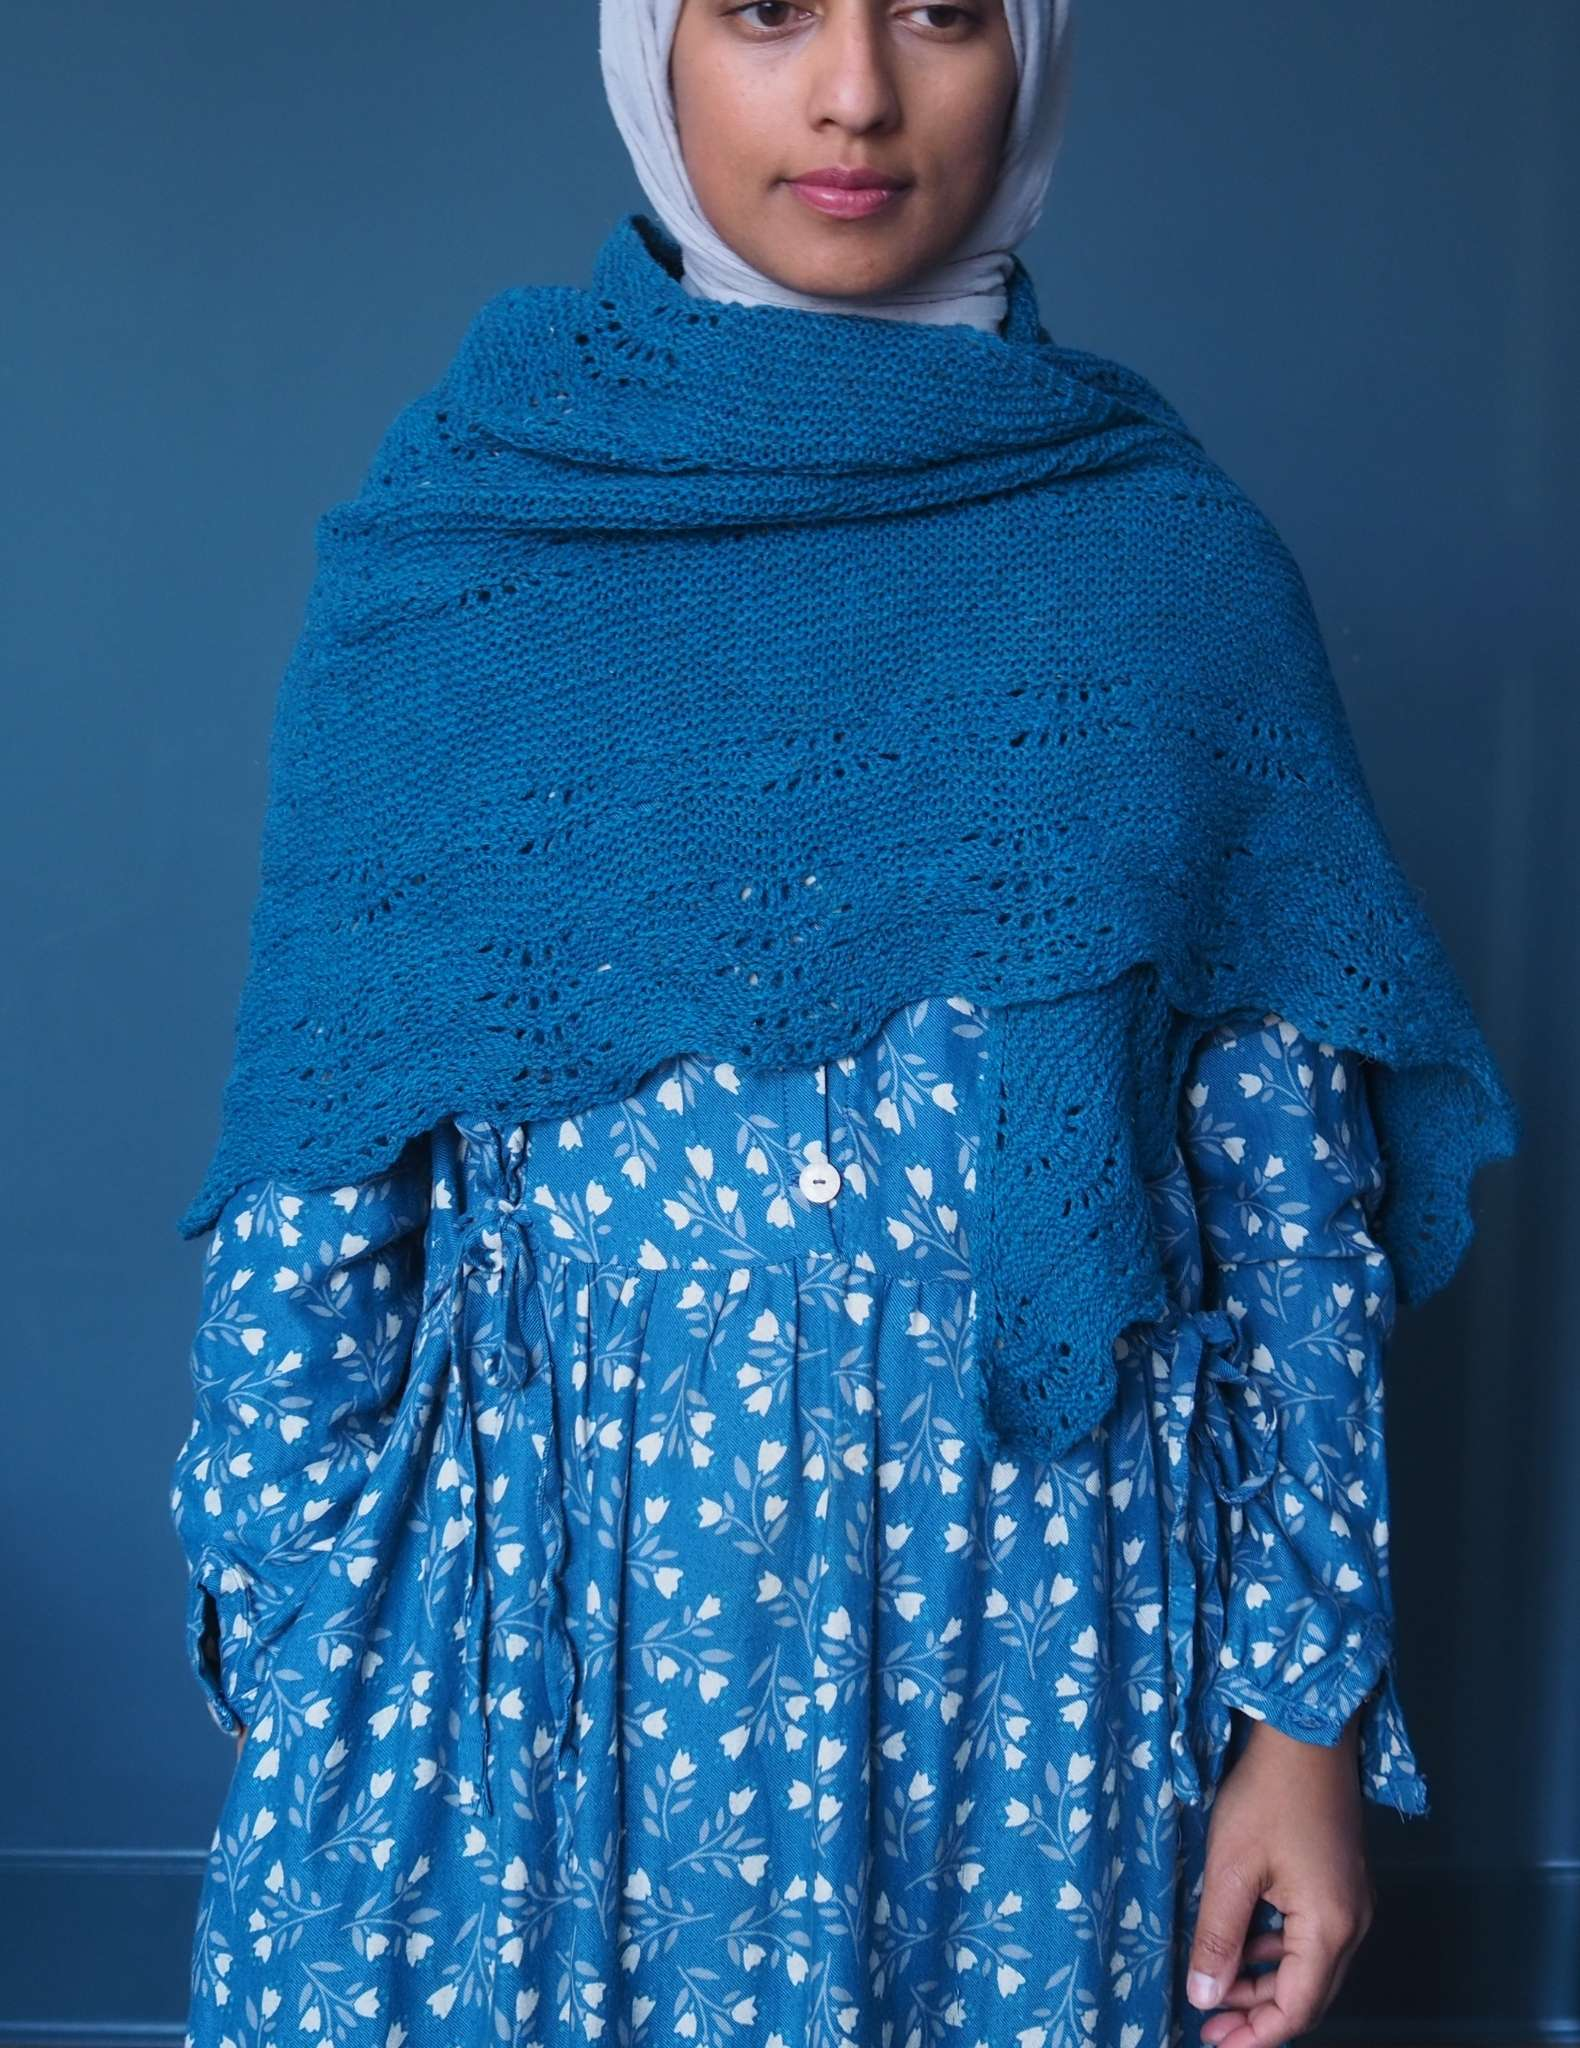 A brown woman in a hijab stands in front of a dark blue background. She is wearing a blue dress with small white floral print and a dark blue shawl which is wrapped around her chest and shoulders.